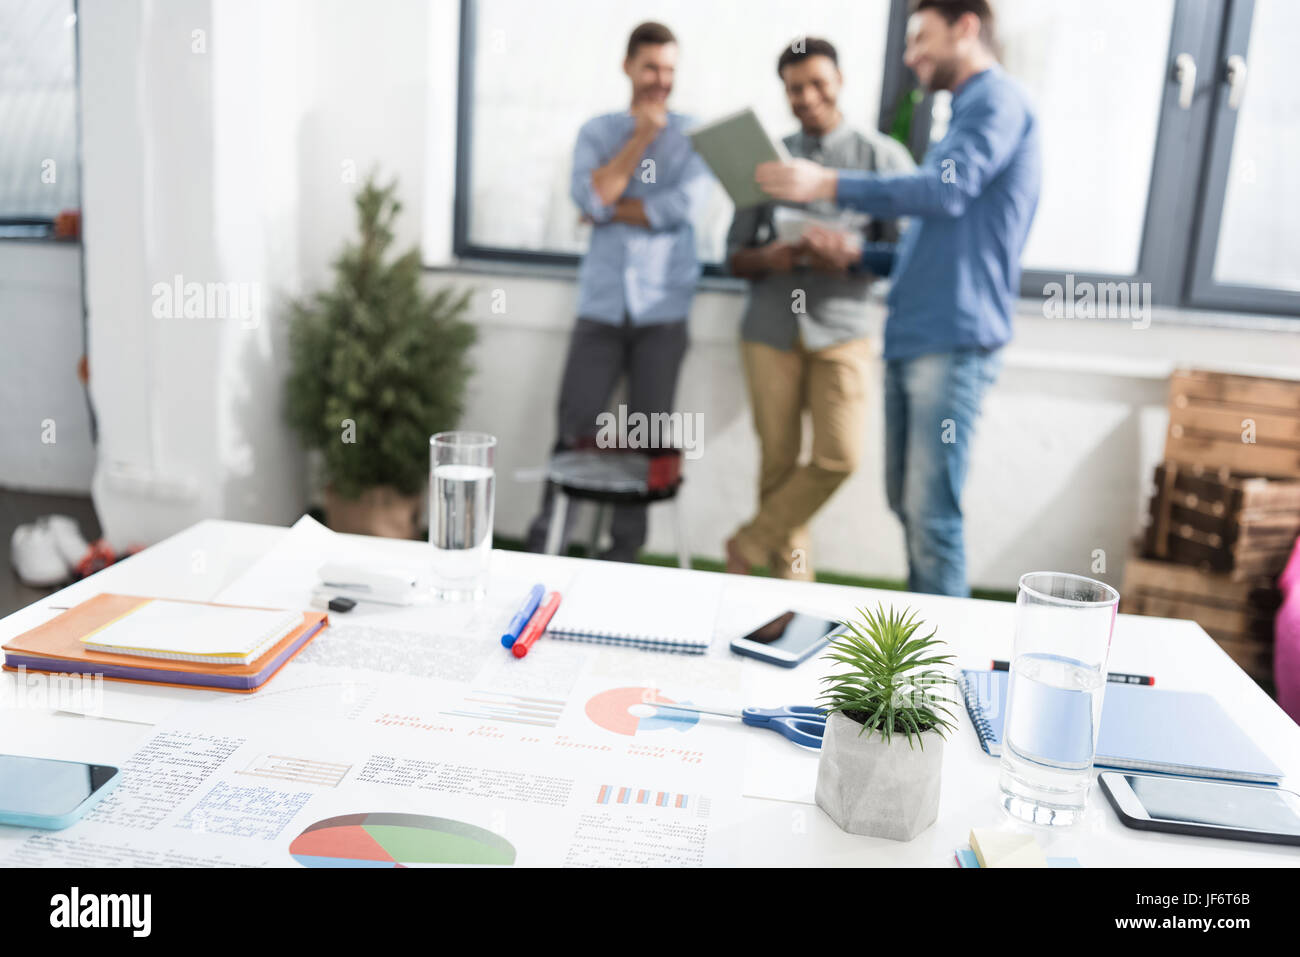 Close-up view of business charts and office supplies on desk and businessmen standing behind, business teamwork - Stock Image